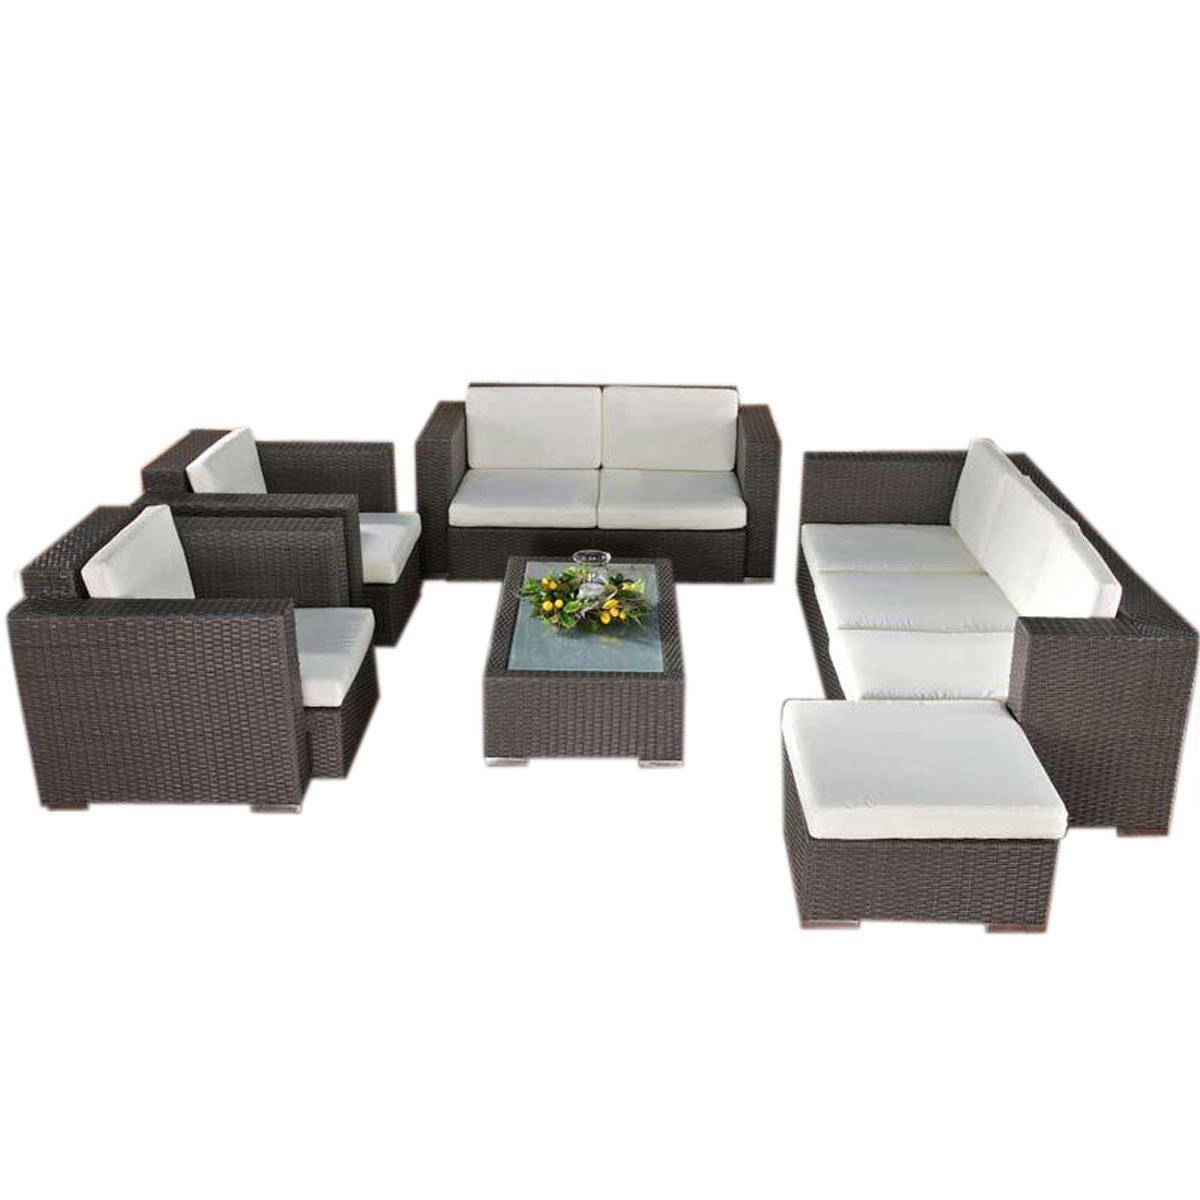 Sof muebles de jard n provence gris mimbre sof for Provence mobiliario